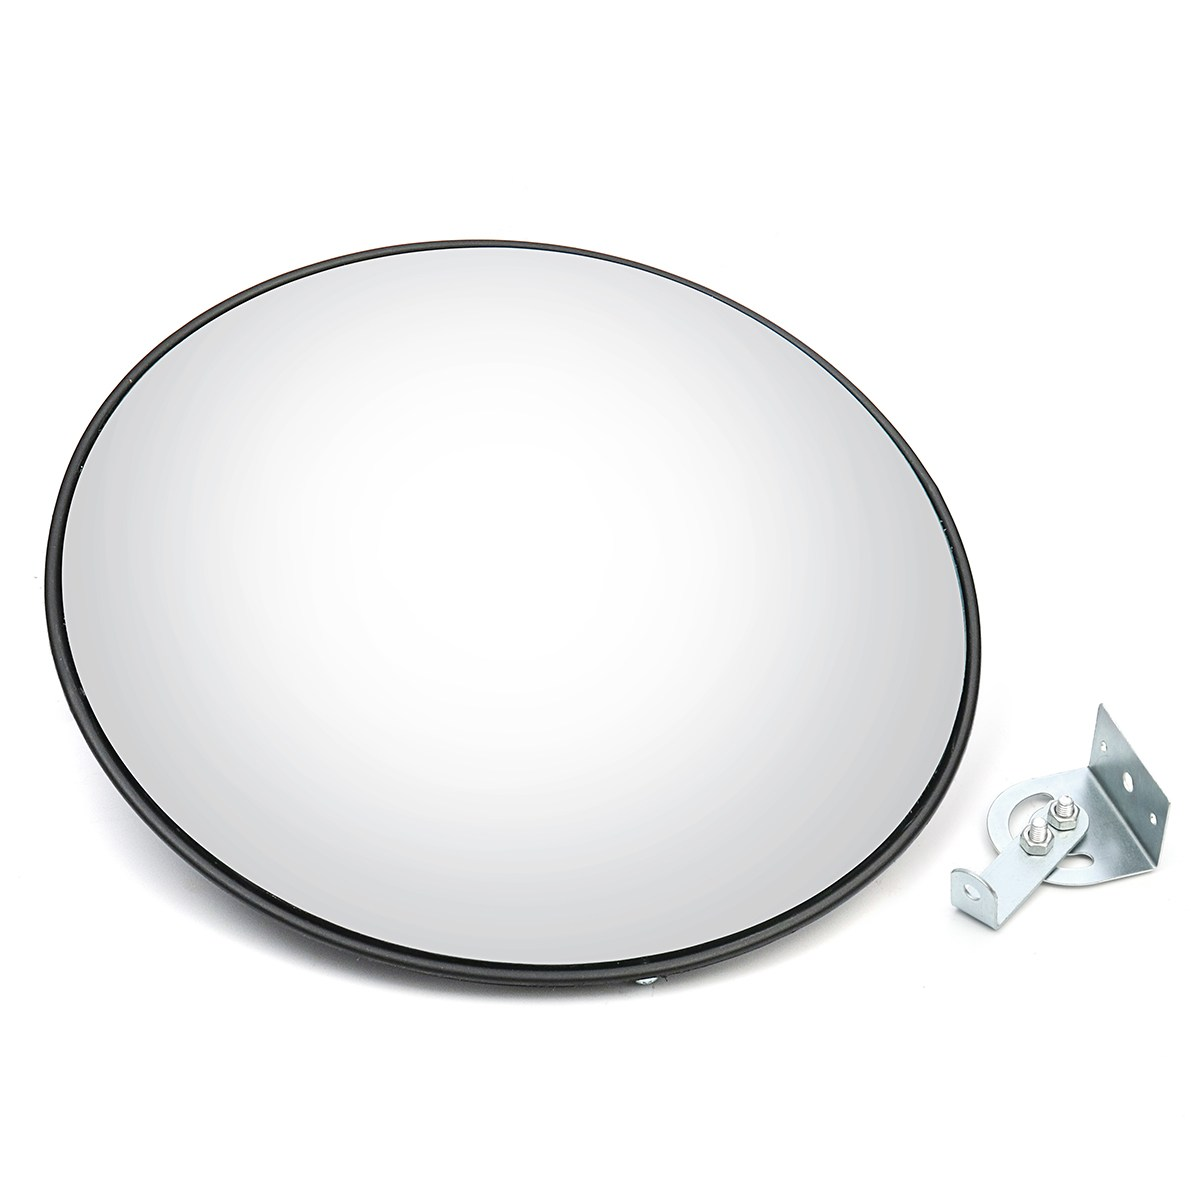 Safurance 45 cm Wide Angle Curved Convex Security Road Mirror For Indoor Burglar Traffic Signal Roadway Safety<br>